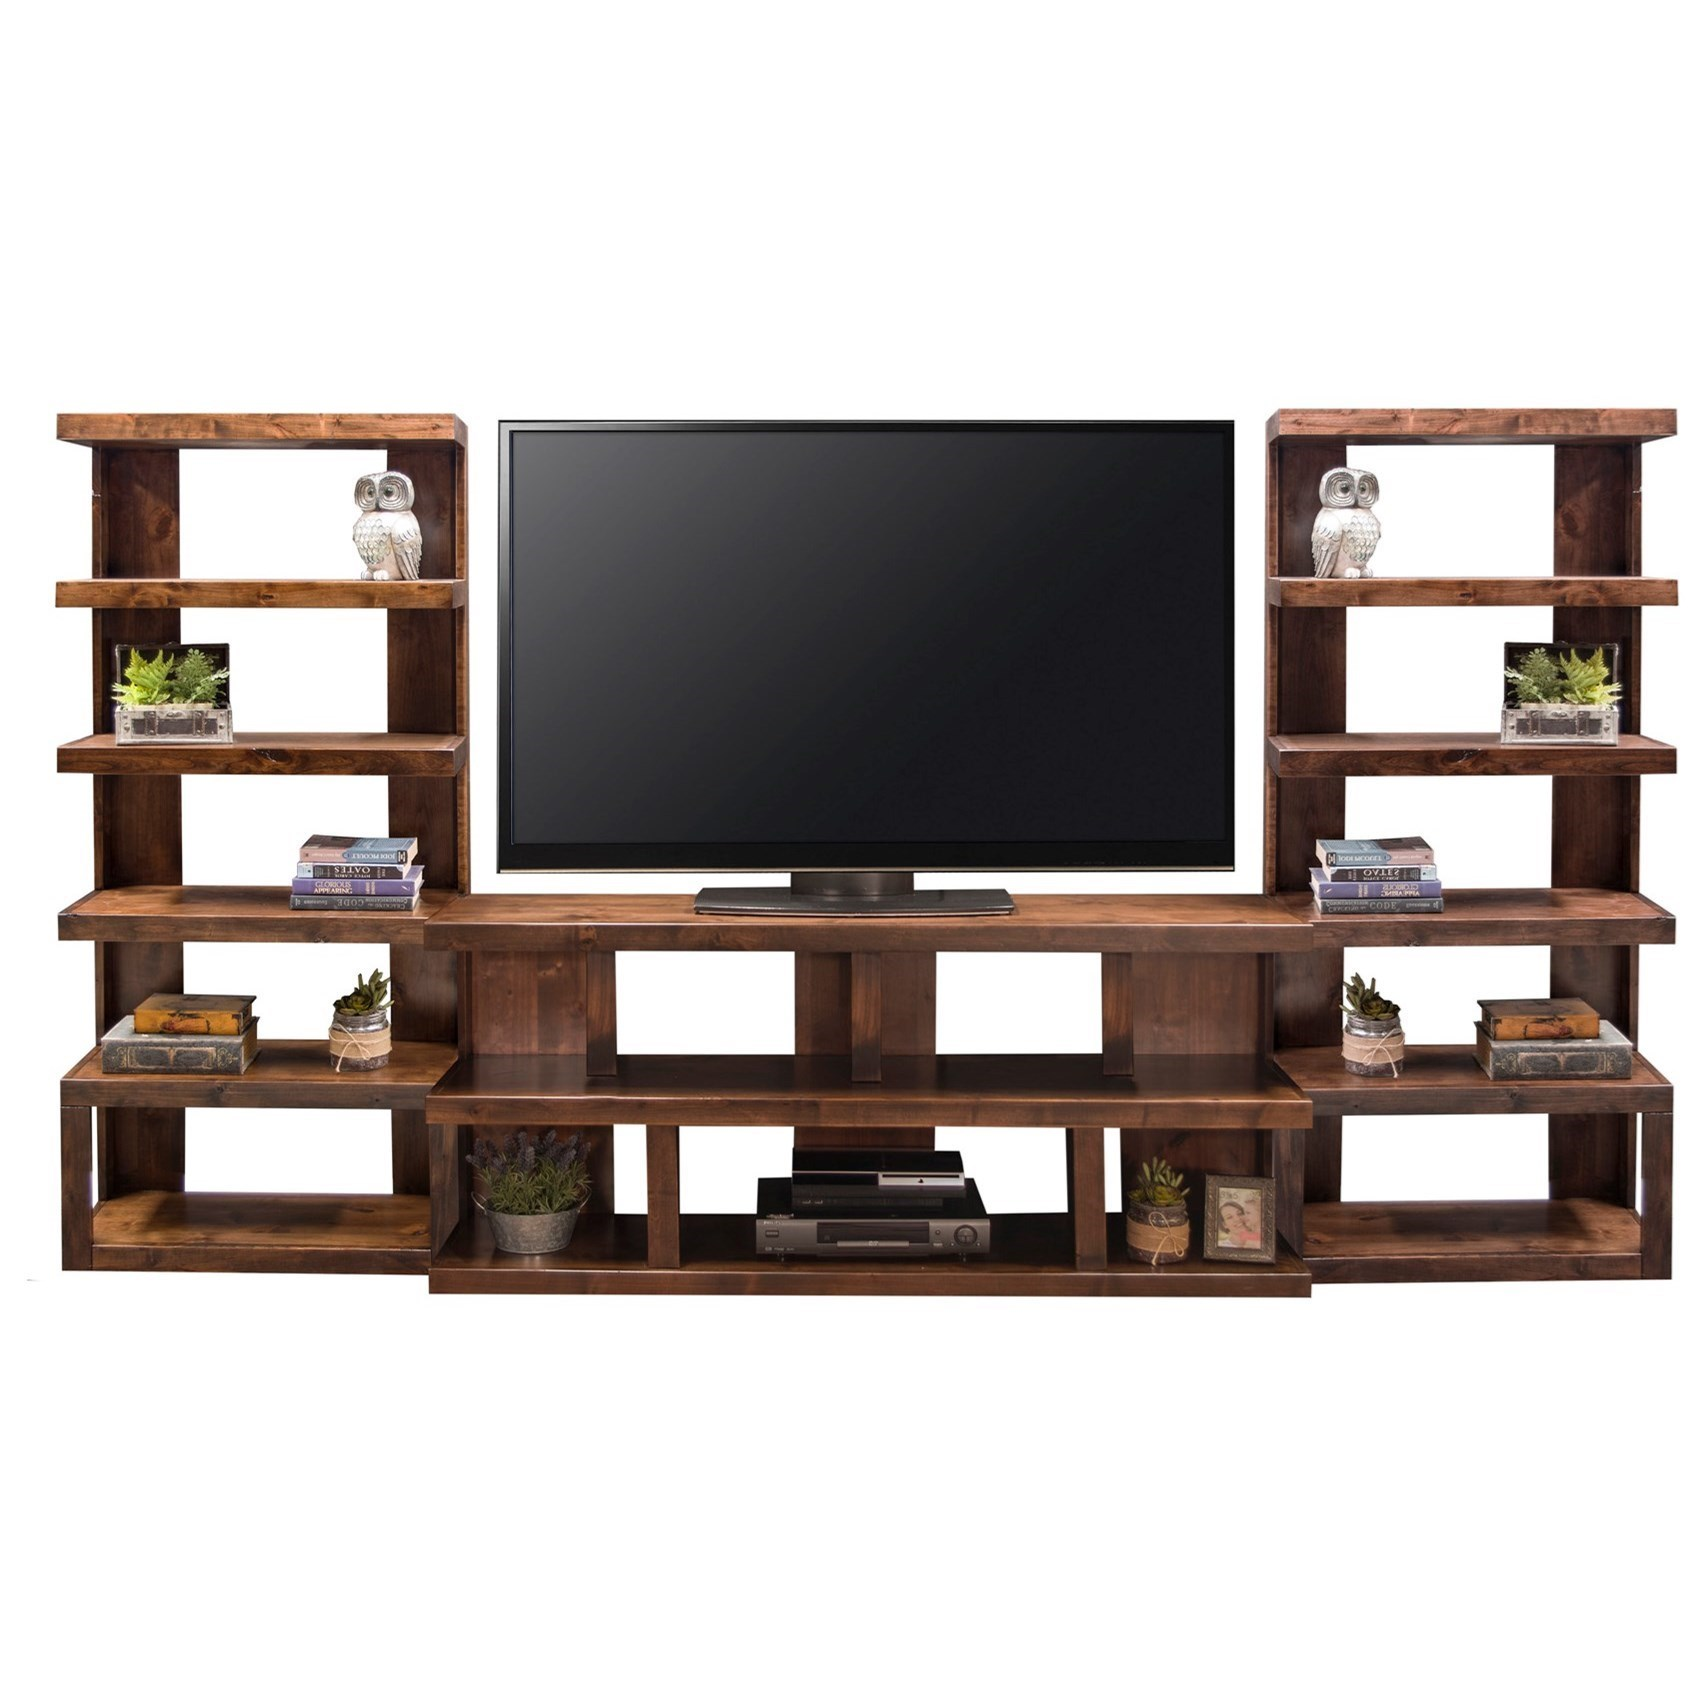 Wall Unit Modern Modern Entertainment Wall Units